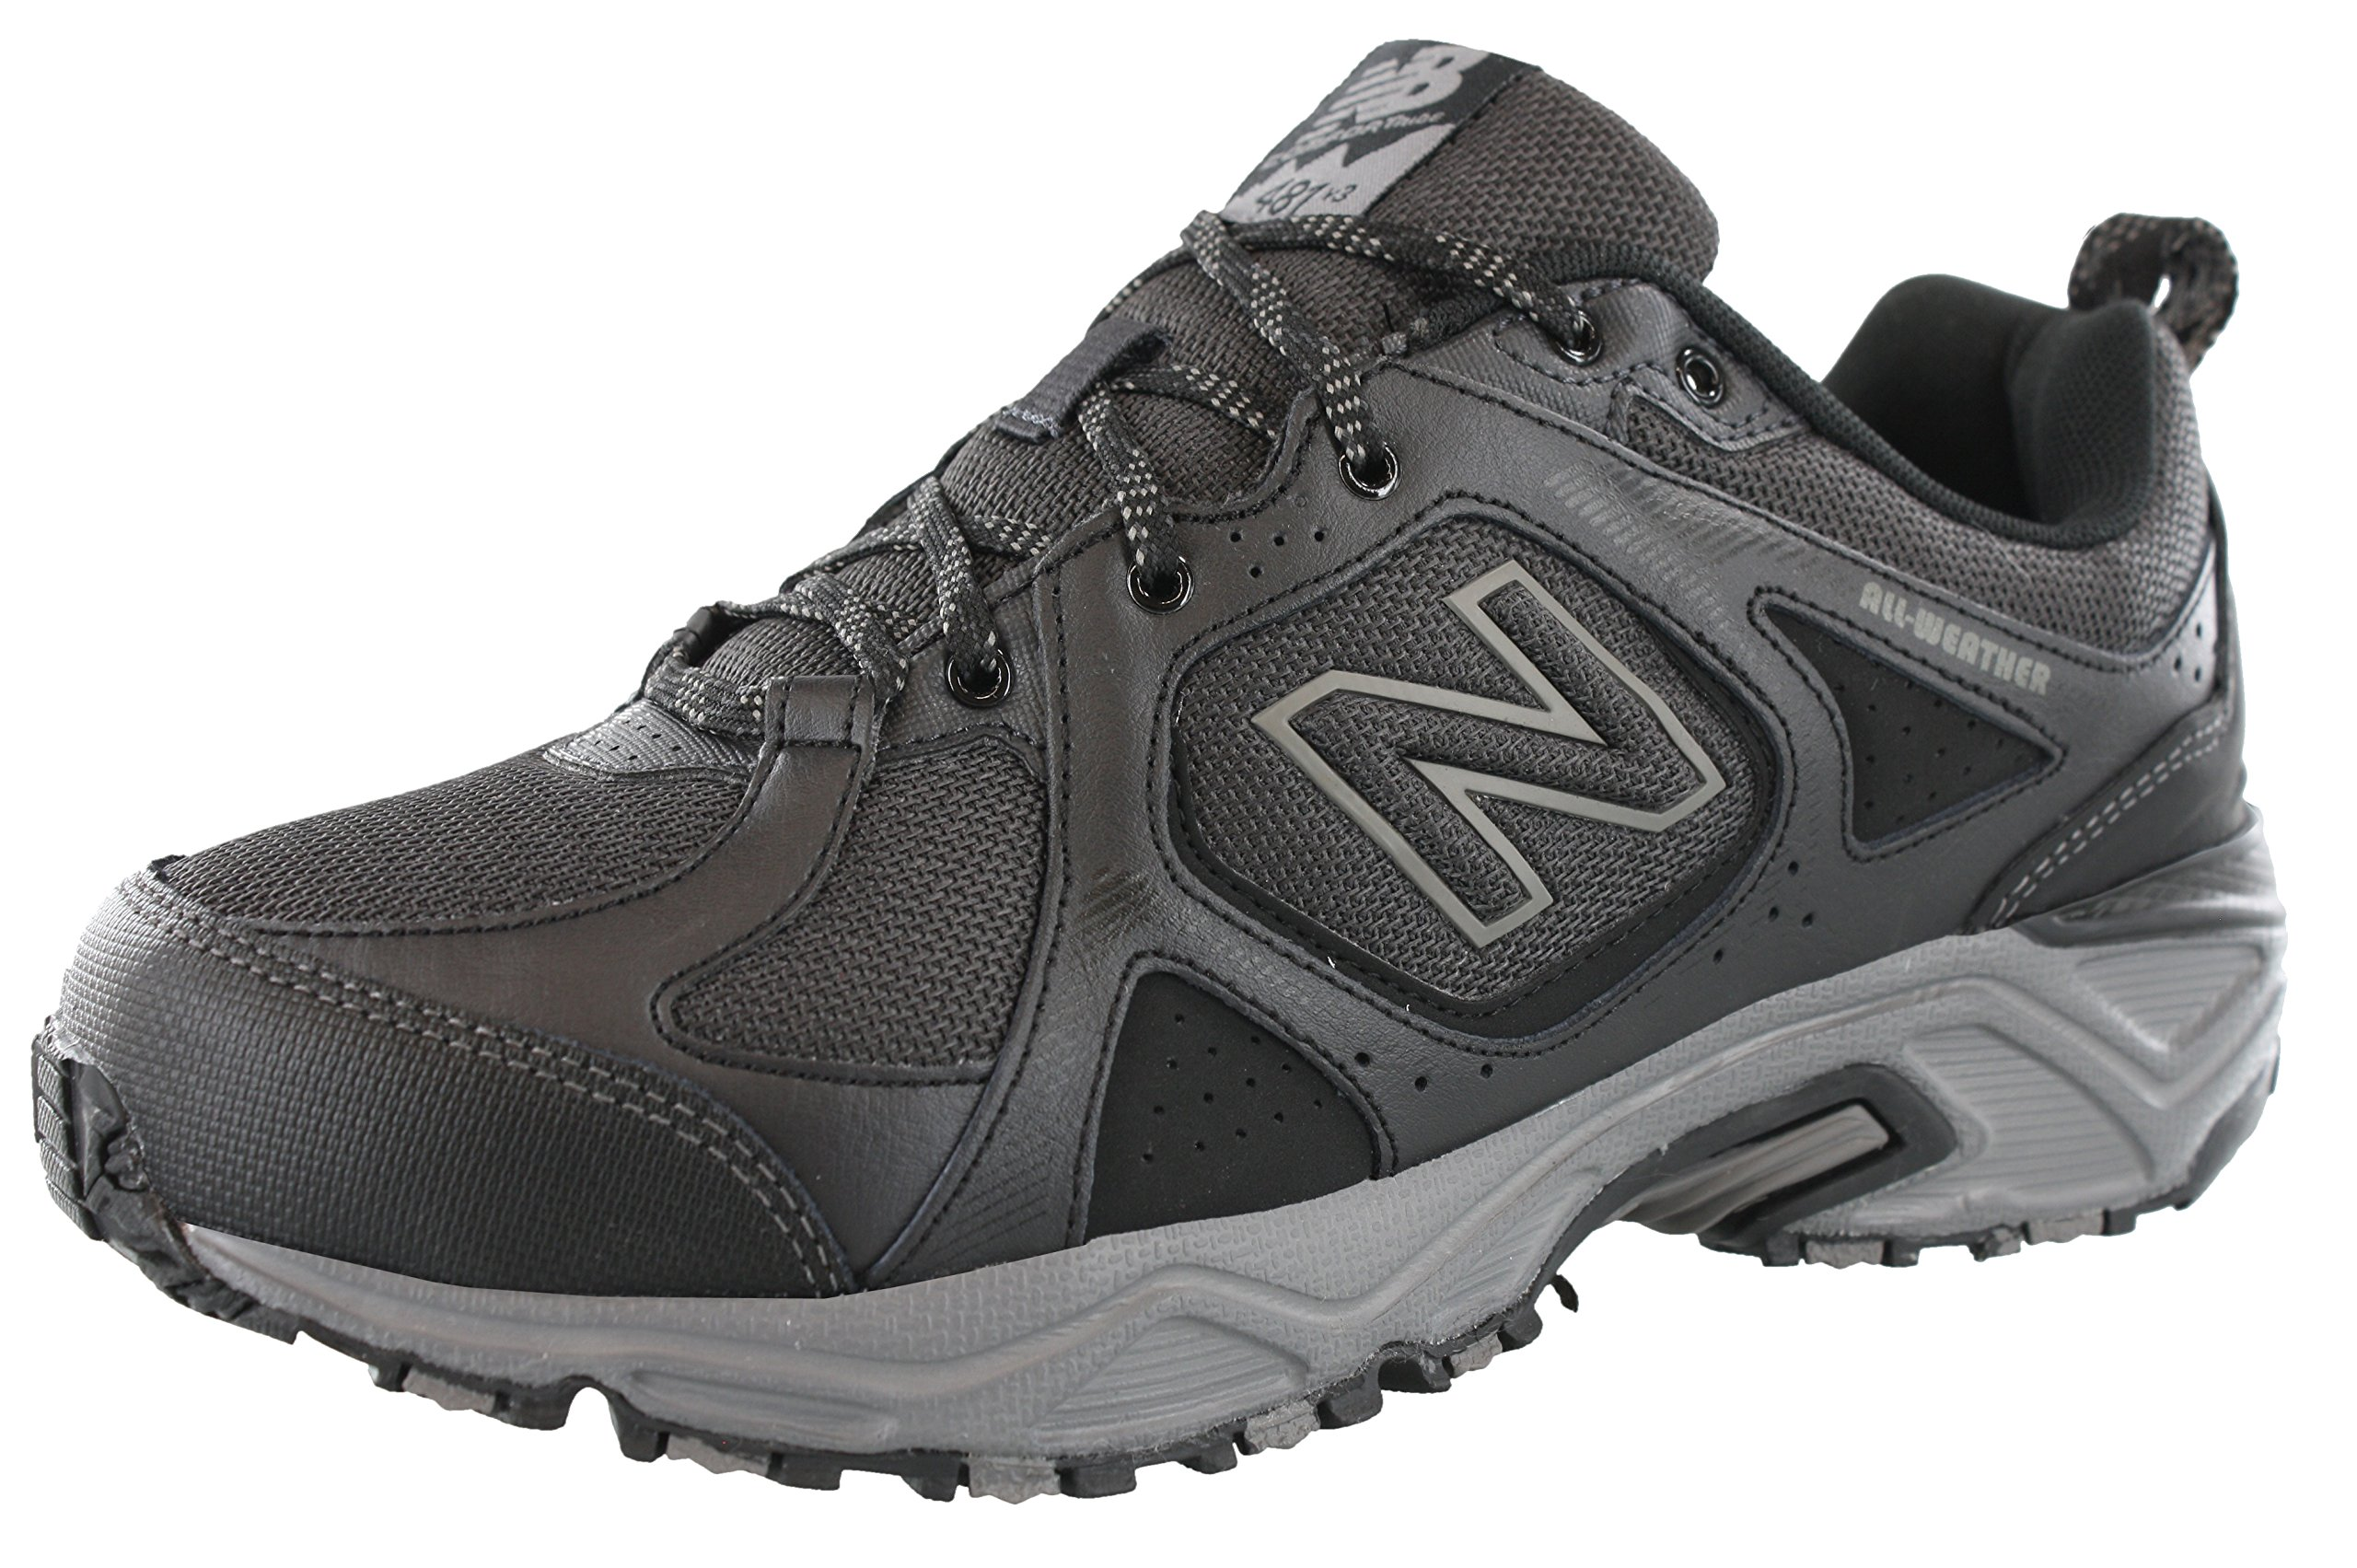 New Balance Men's 481V3 Water Resistant Cushioning Trail Running Shoe, Black/Grey, 10.5 4E US